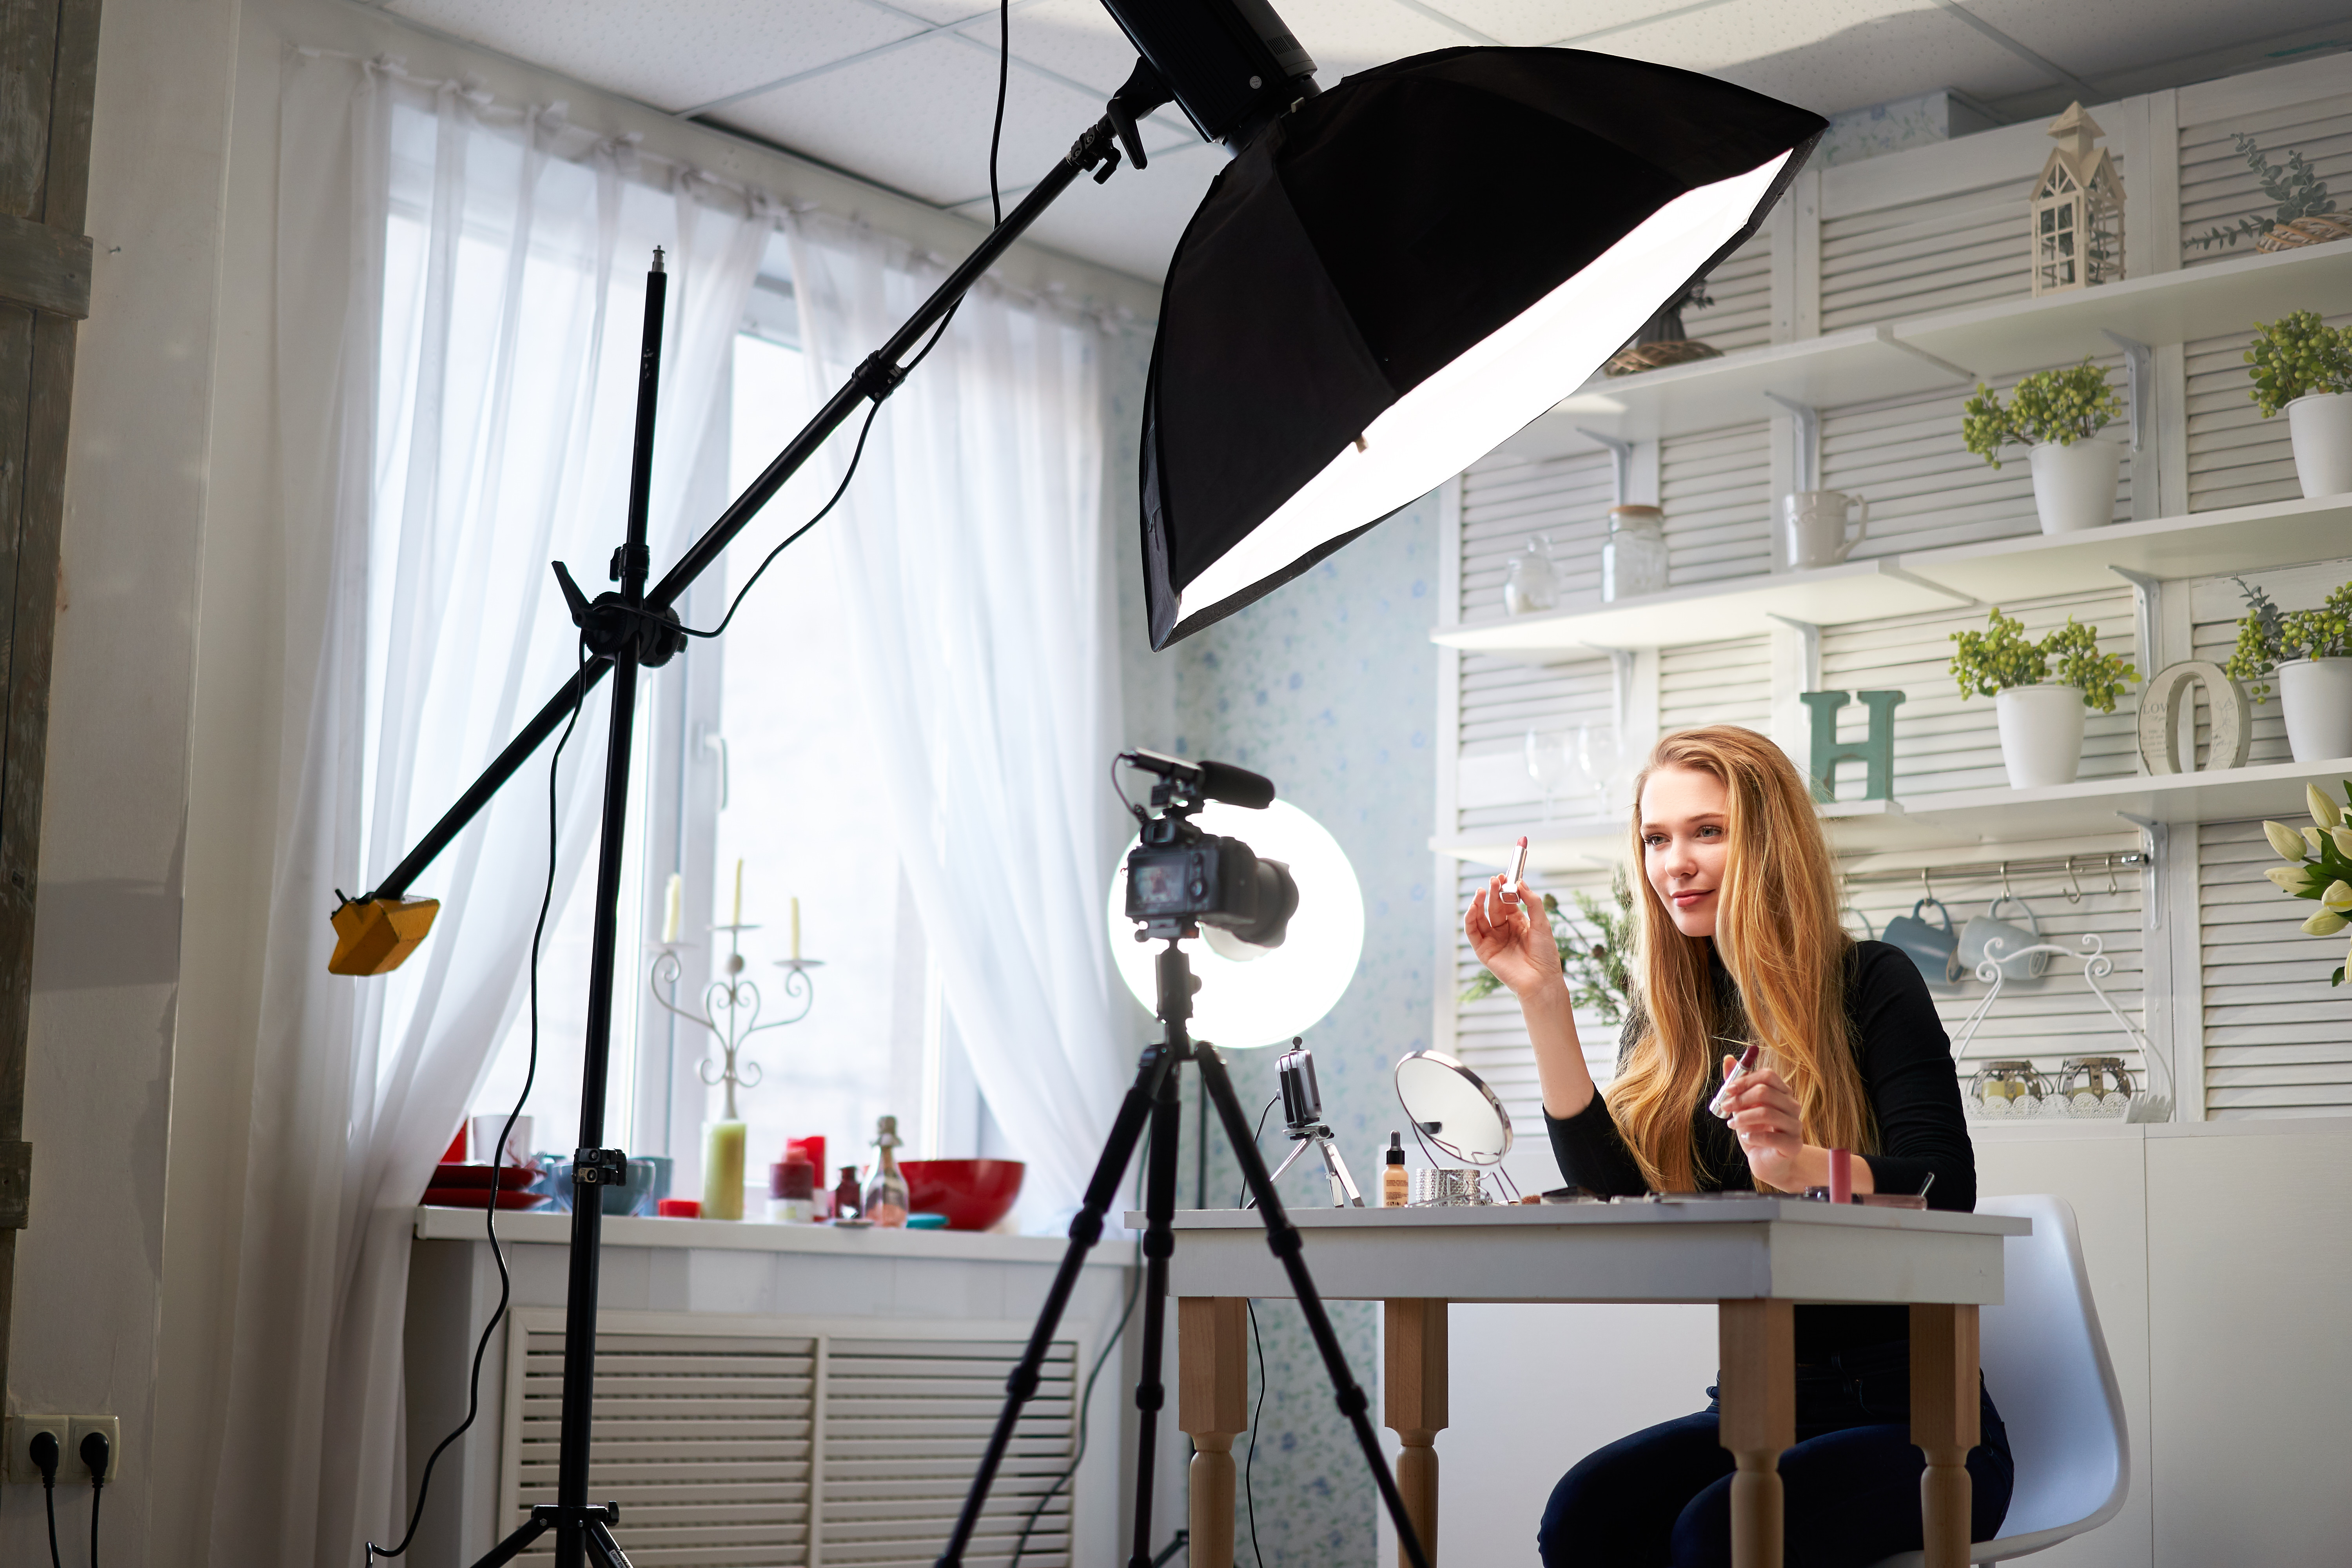 Video from Home: How To Look (and Sound) Your Best On Camera